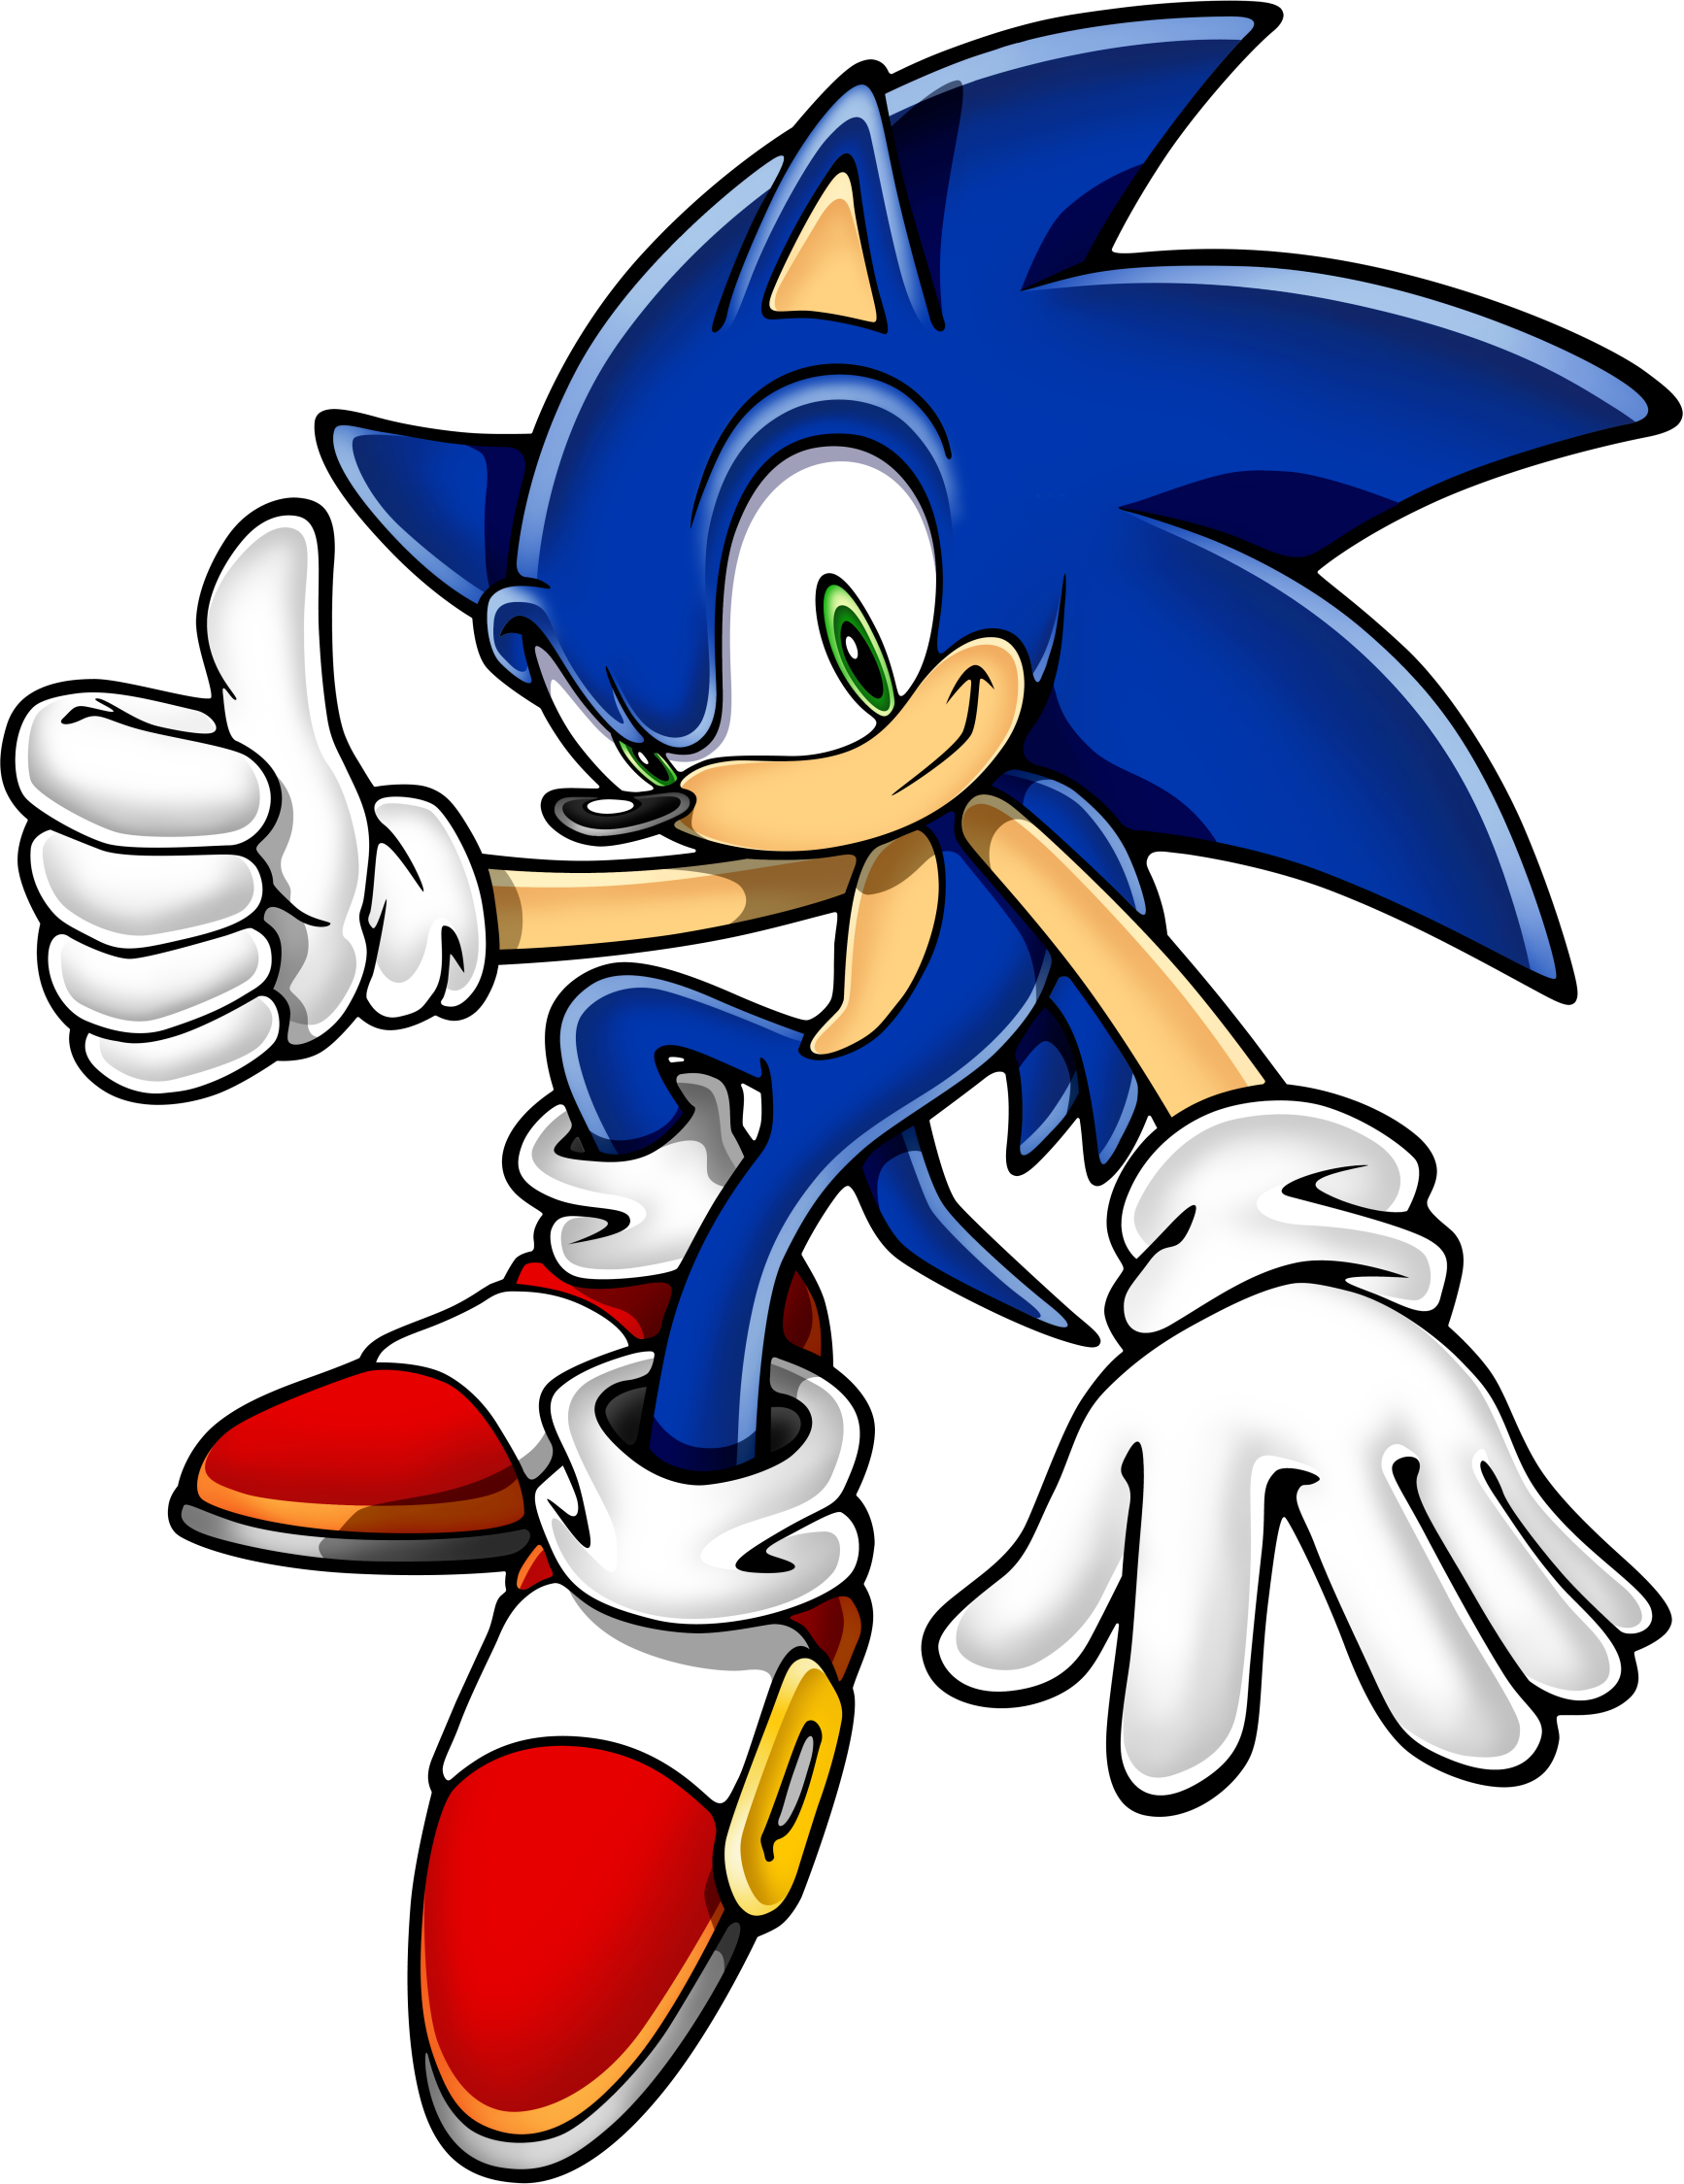 Pin By Milkkanddhoneyy On Sonic And Co Sonic The Hedgehog Sonic Game Character